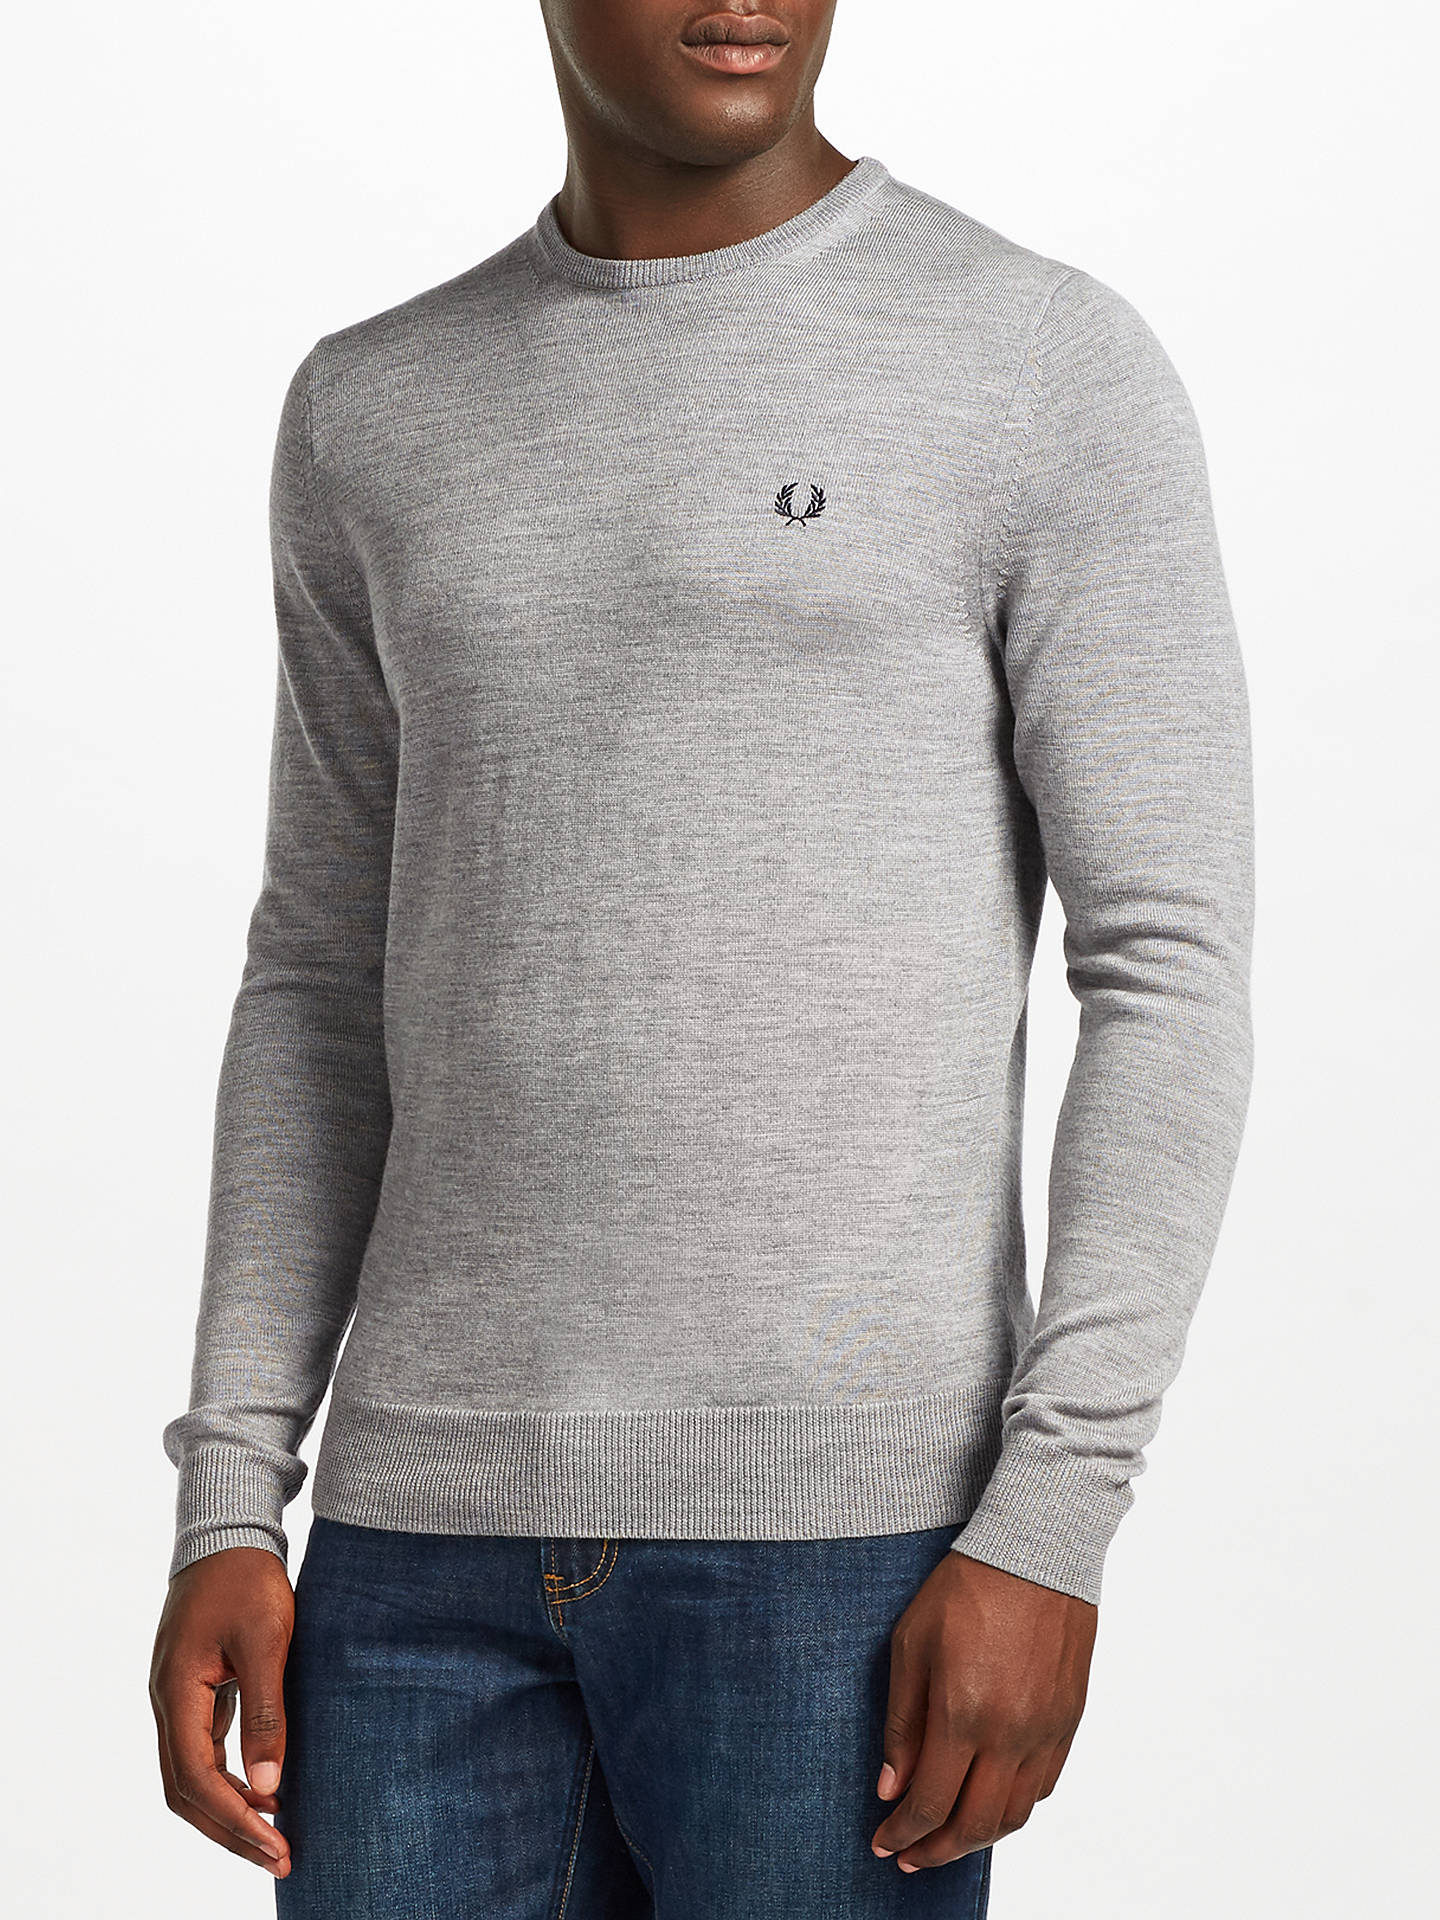 f6d561dd683222 Buy Fred Perry Classic Crew Merino Jumper, Steel Marl, M Online at  johnlewis.